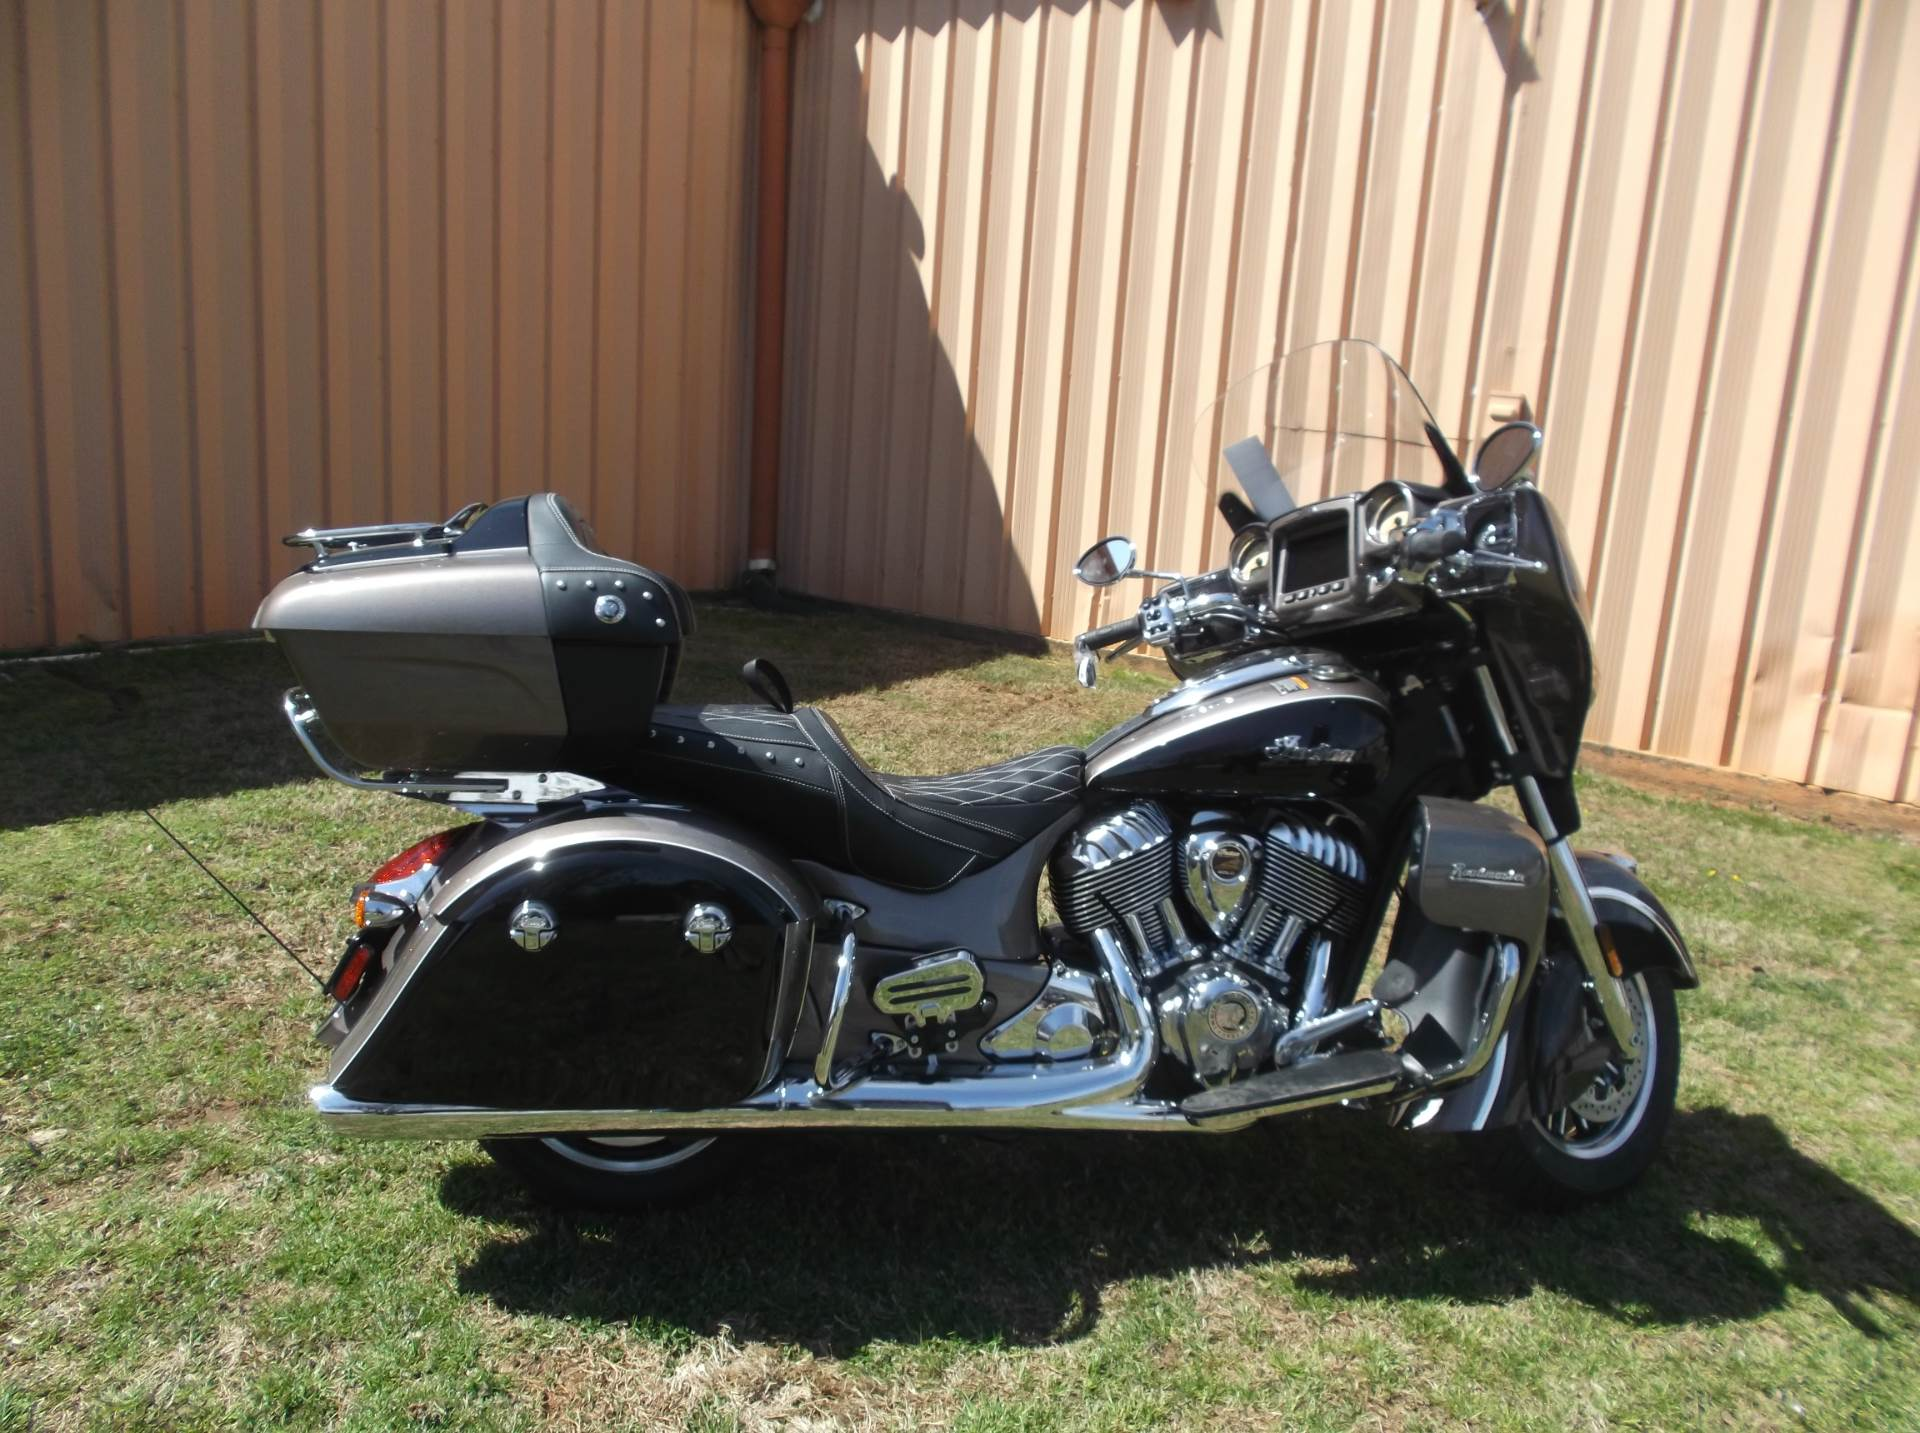 2019 Indian Roadmaster ABS for sale 6294